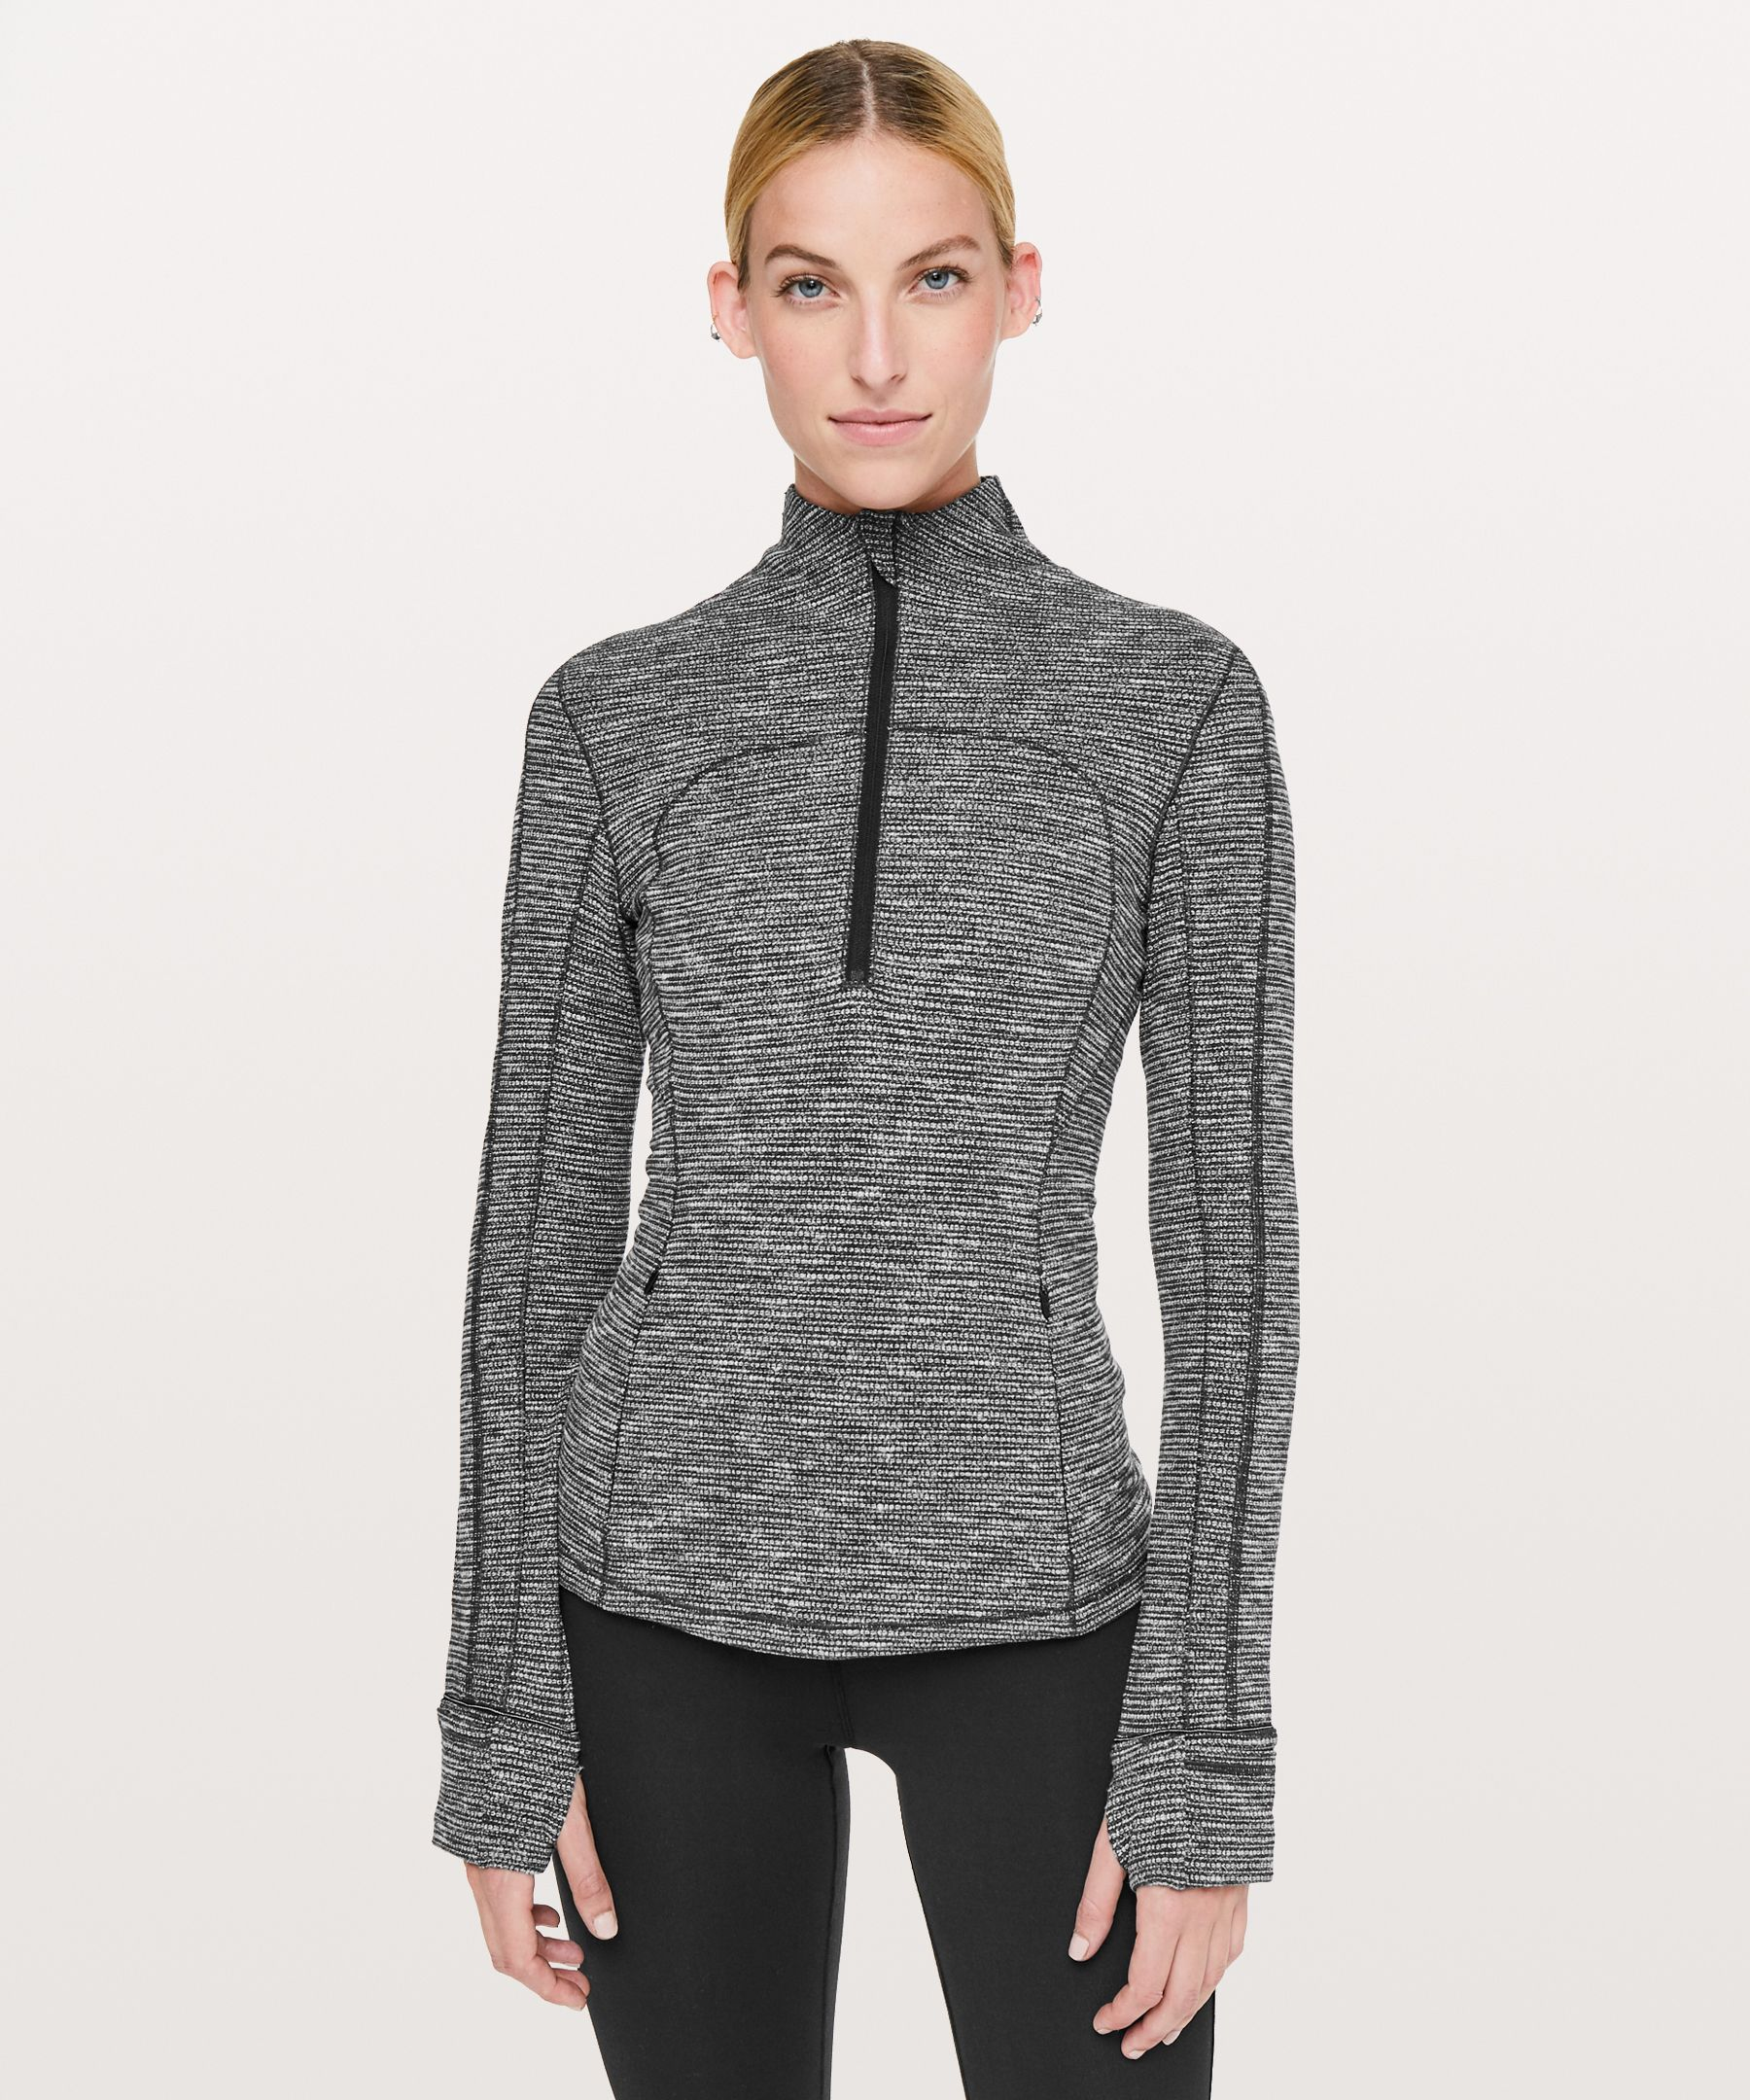 Run Briskly 1/2 Zip New by Lululemon